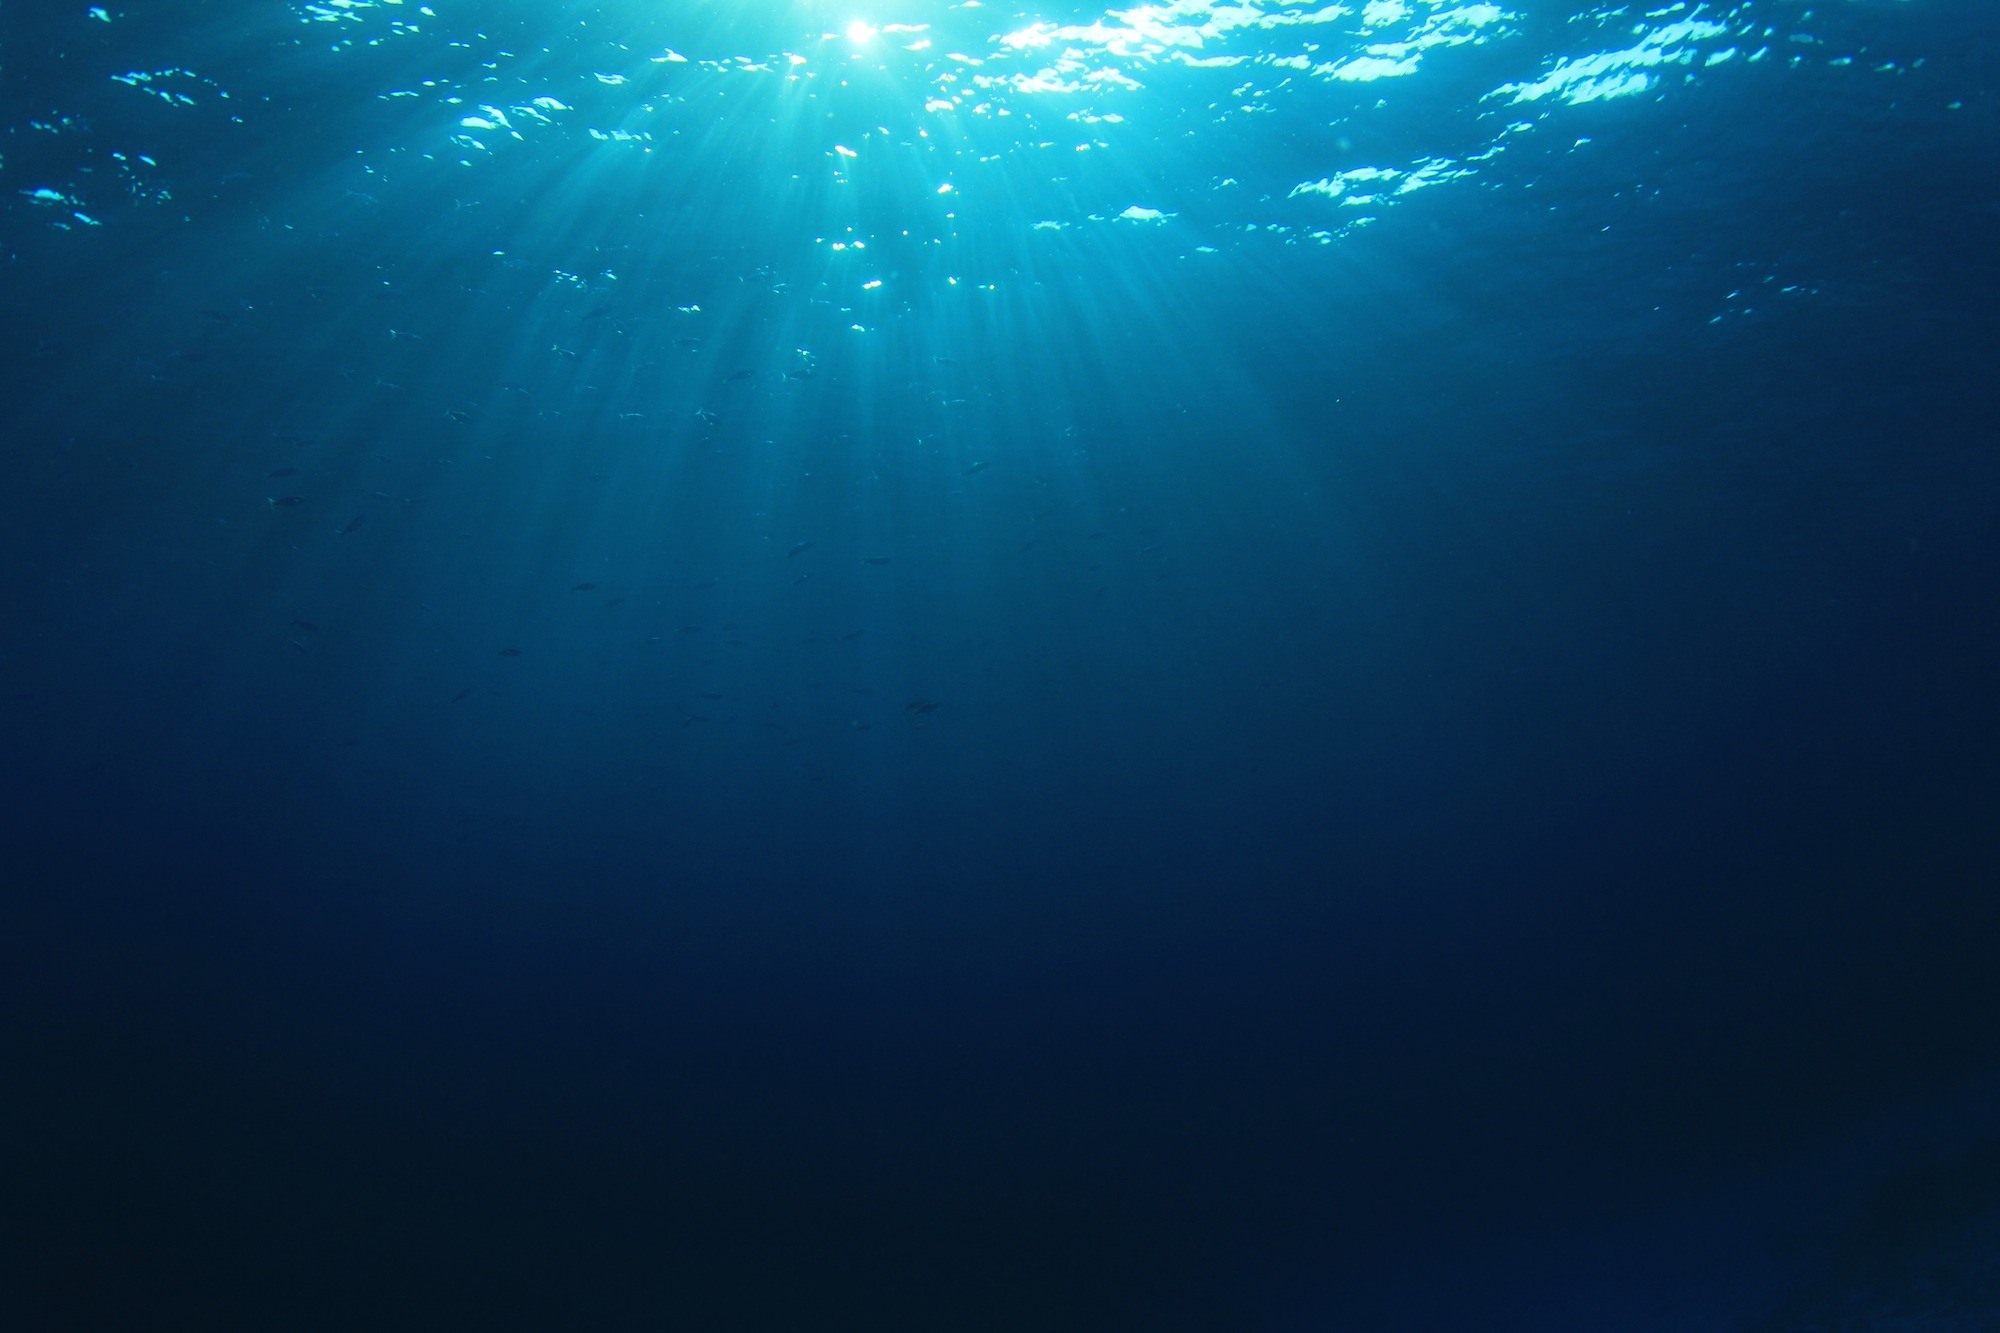 Britain's first wave farm to launch in 2018: a new source of clean energy in the country's first-ever underwater wave farm.